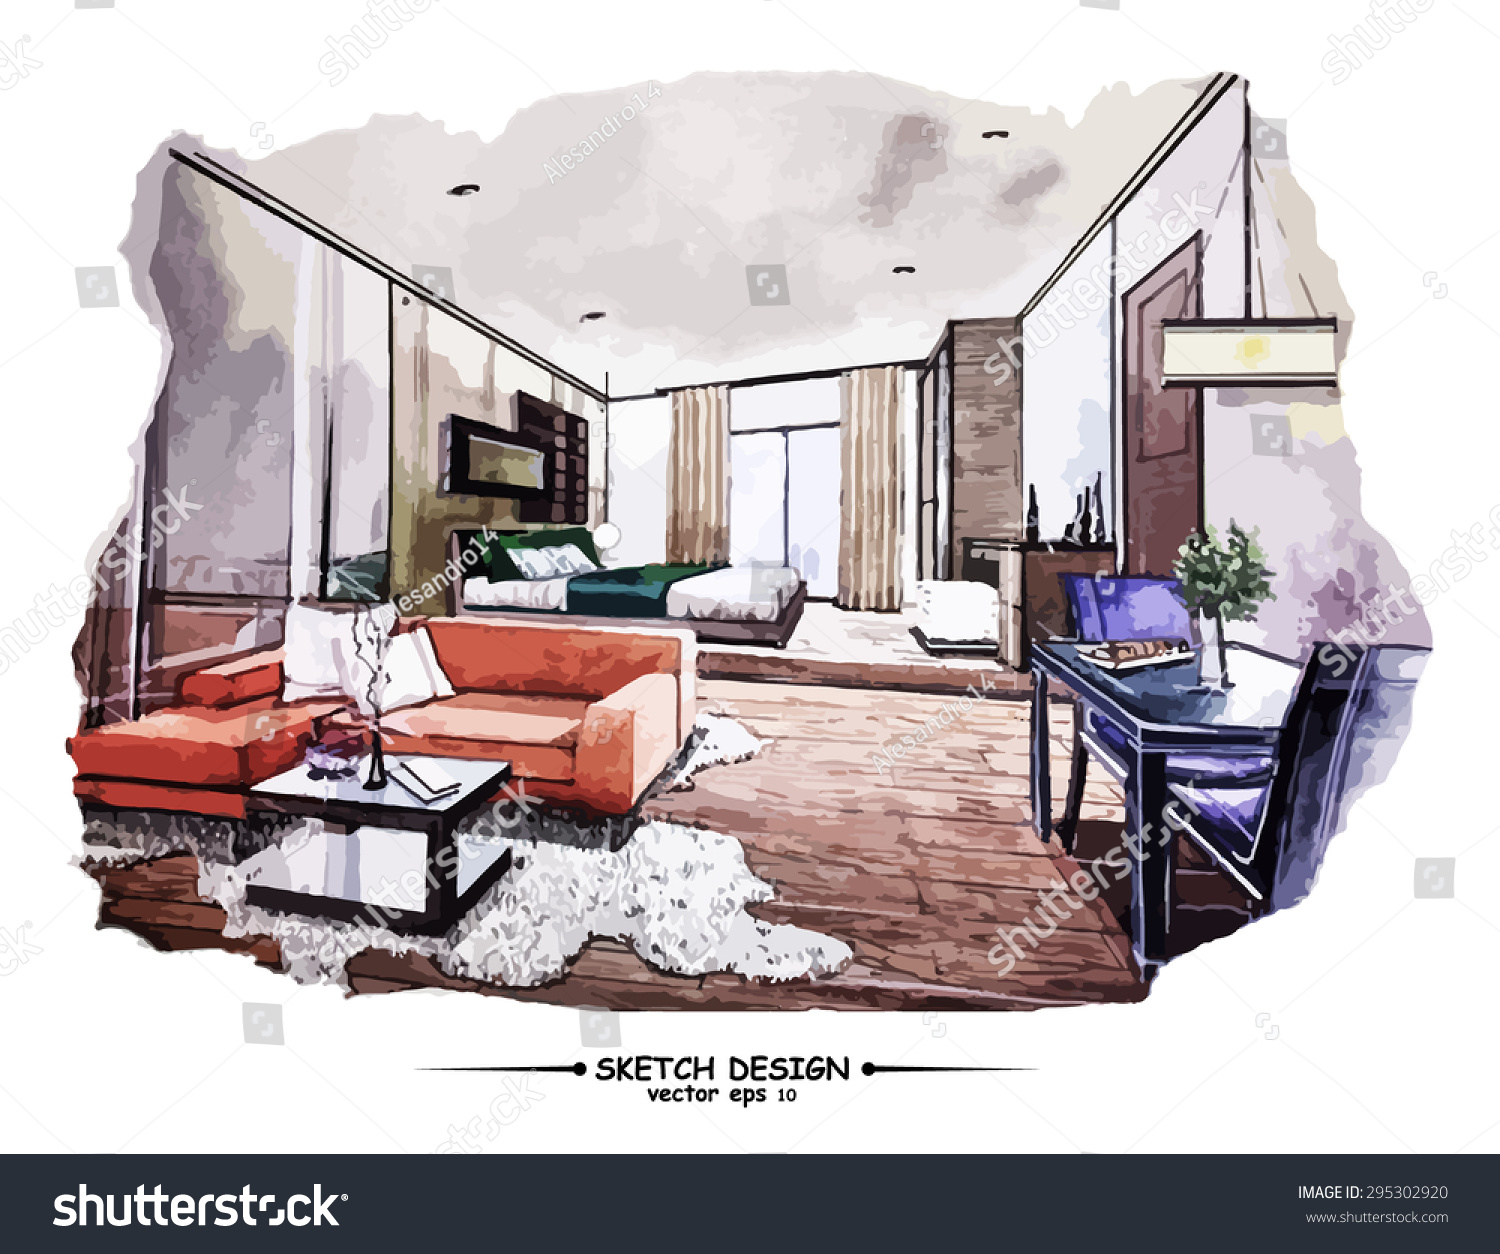 Interior Design Sketch: Vector Interior Sketch Design Watercolor Sketching Stock